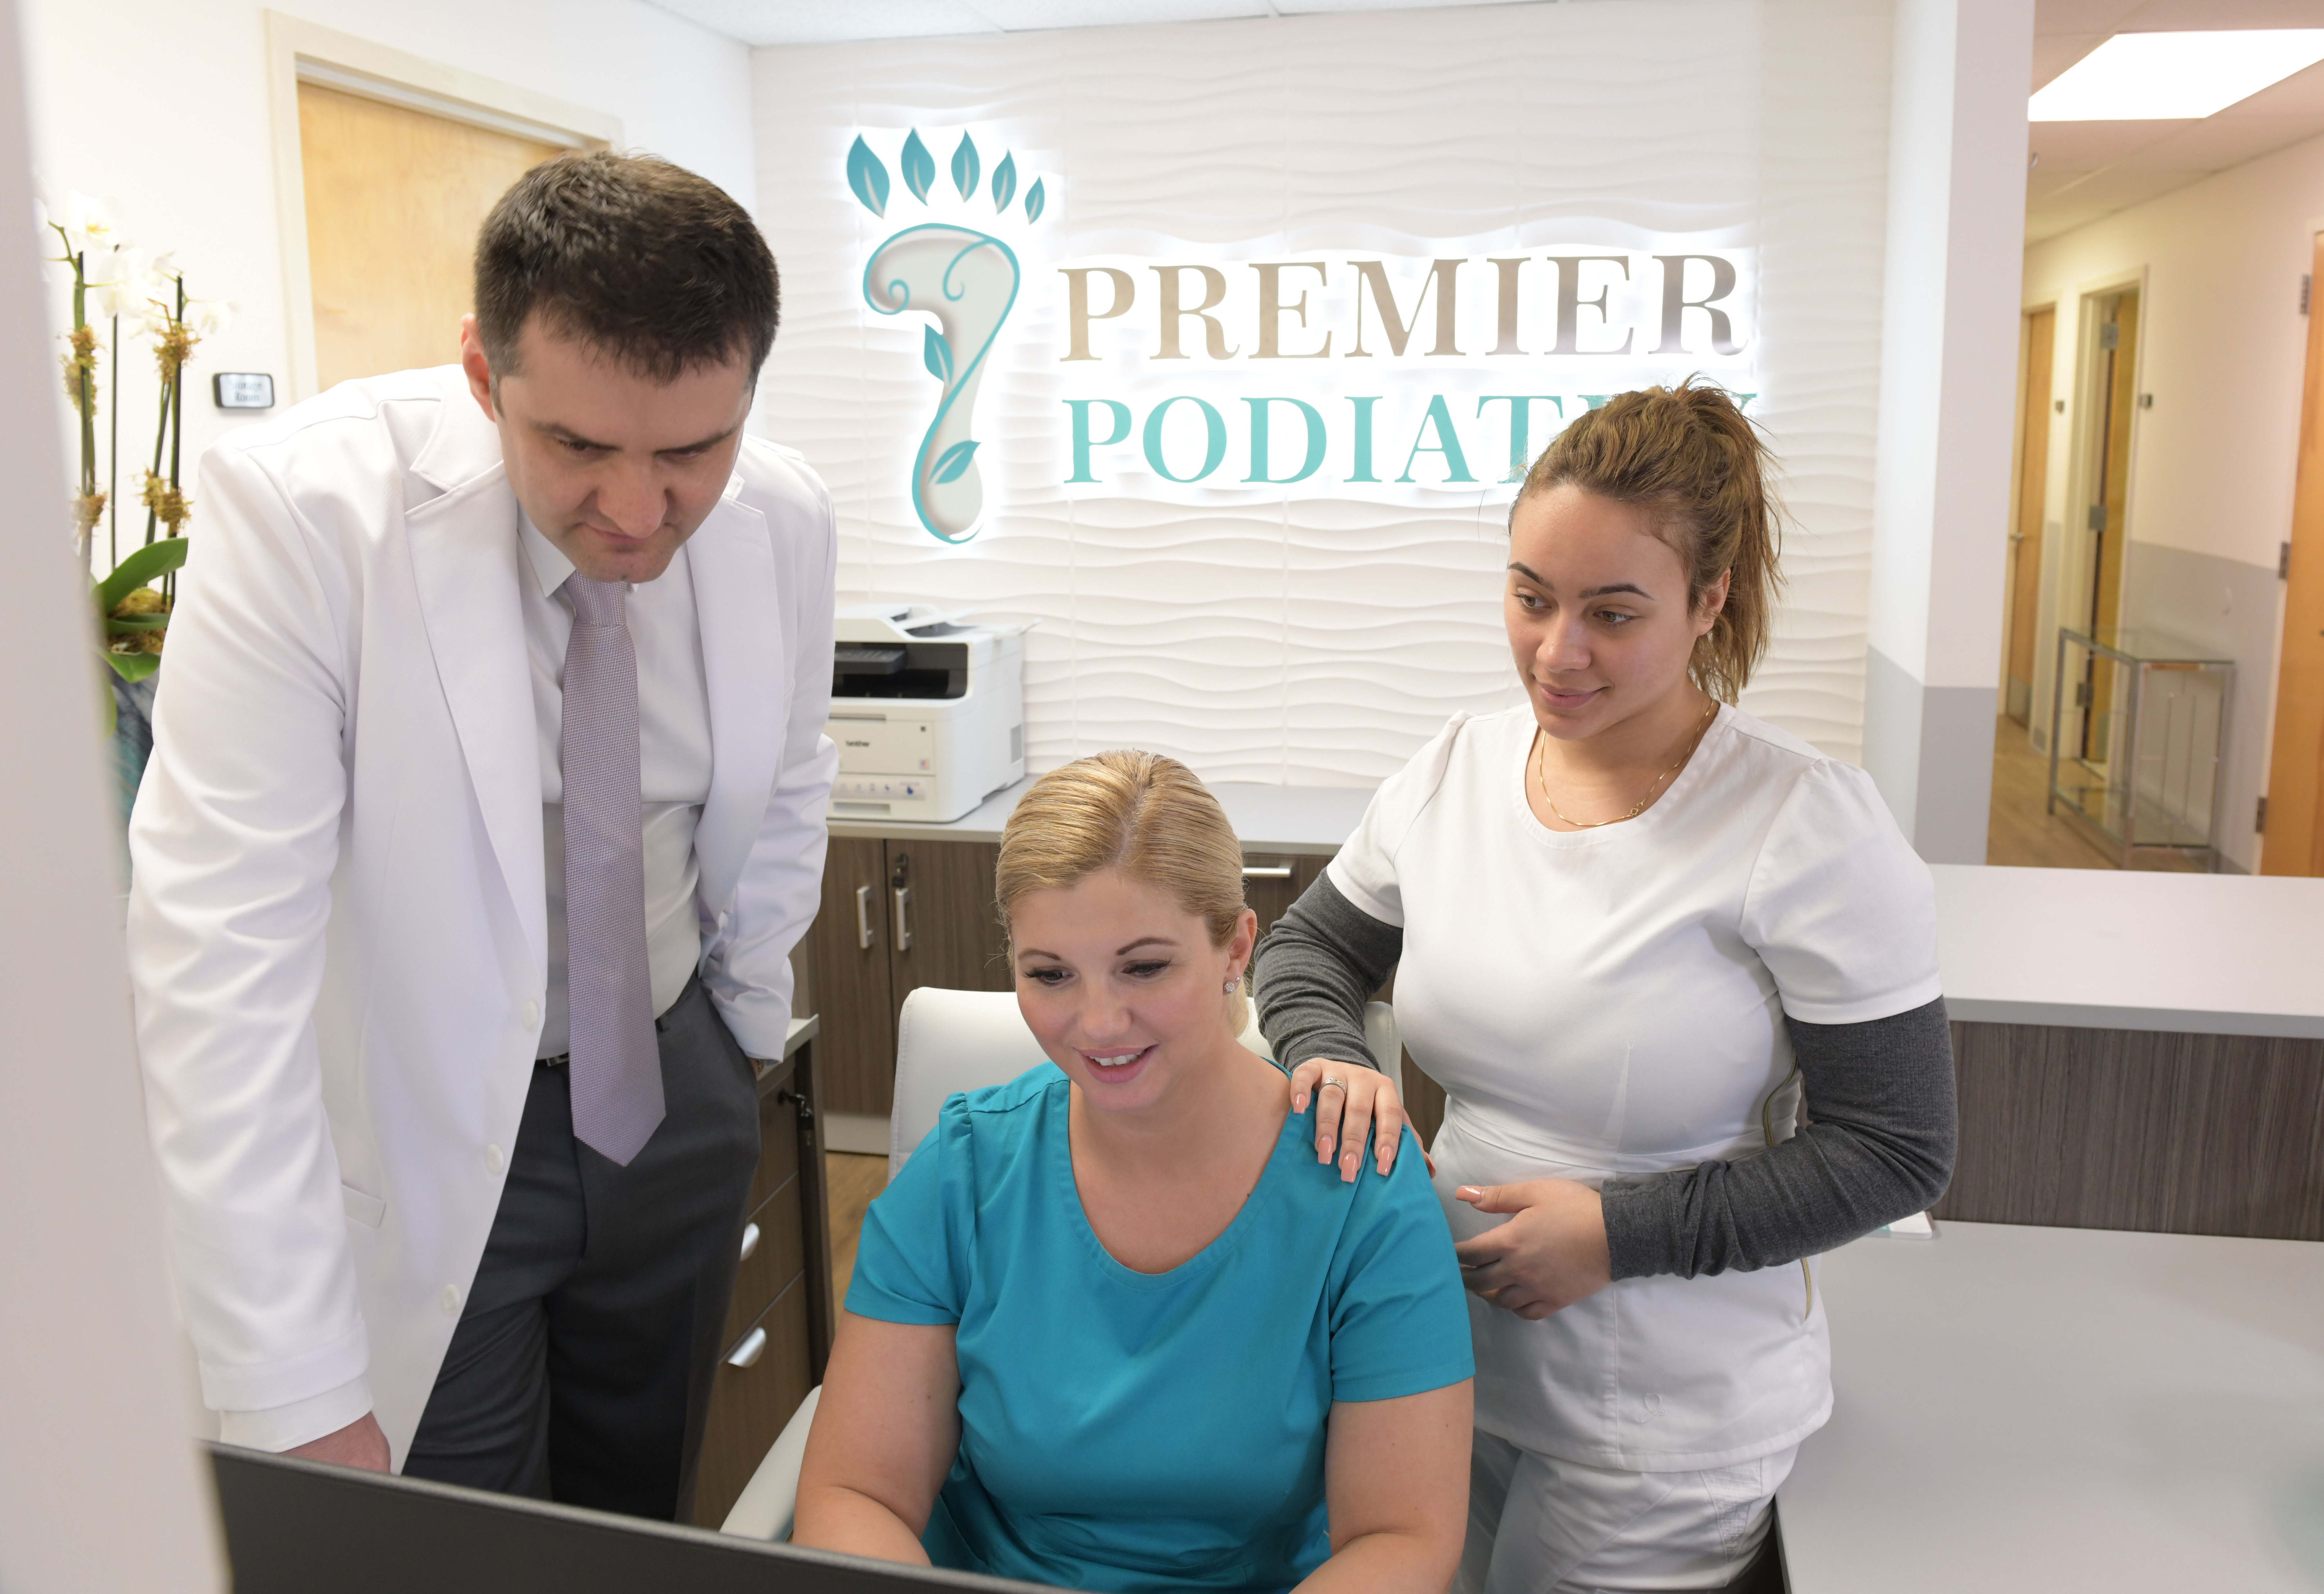 Dr. Velimir Petkov and the team at Premier Podiatry 925 Clifton Ave Ste. 107 Clifton, NJ